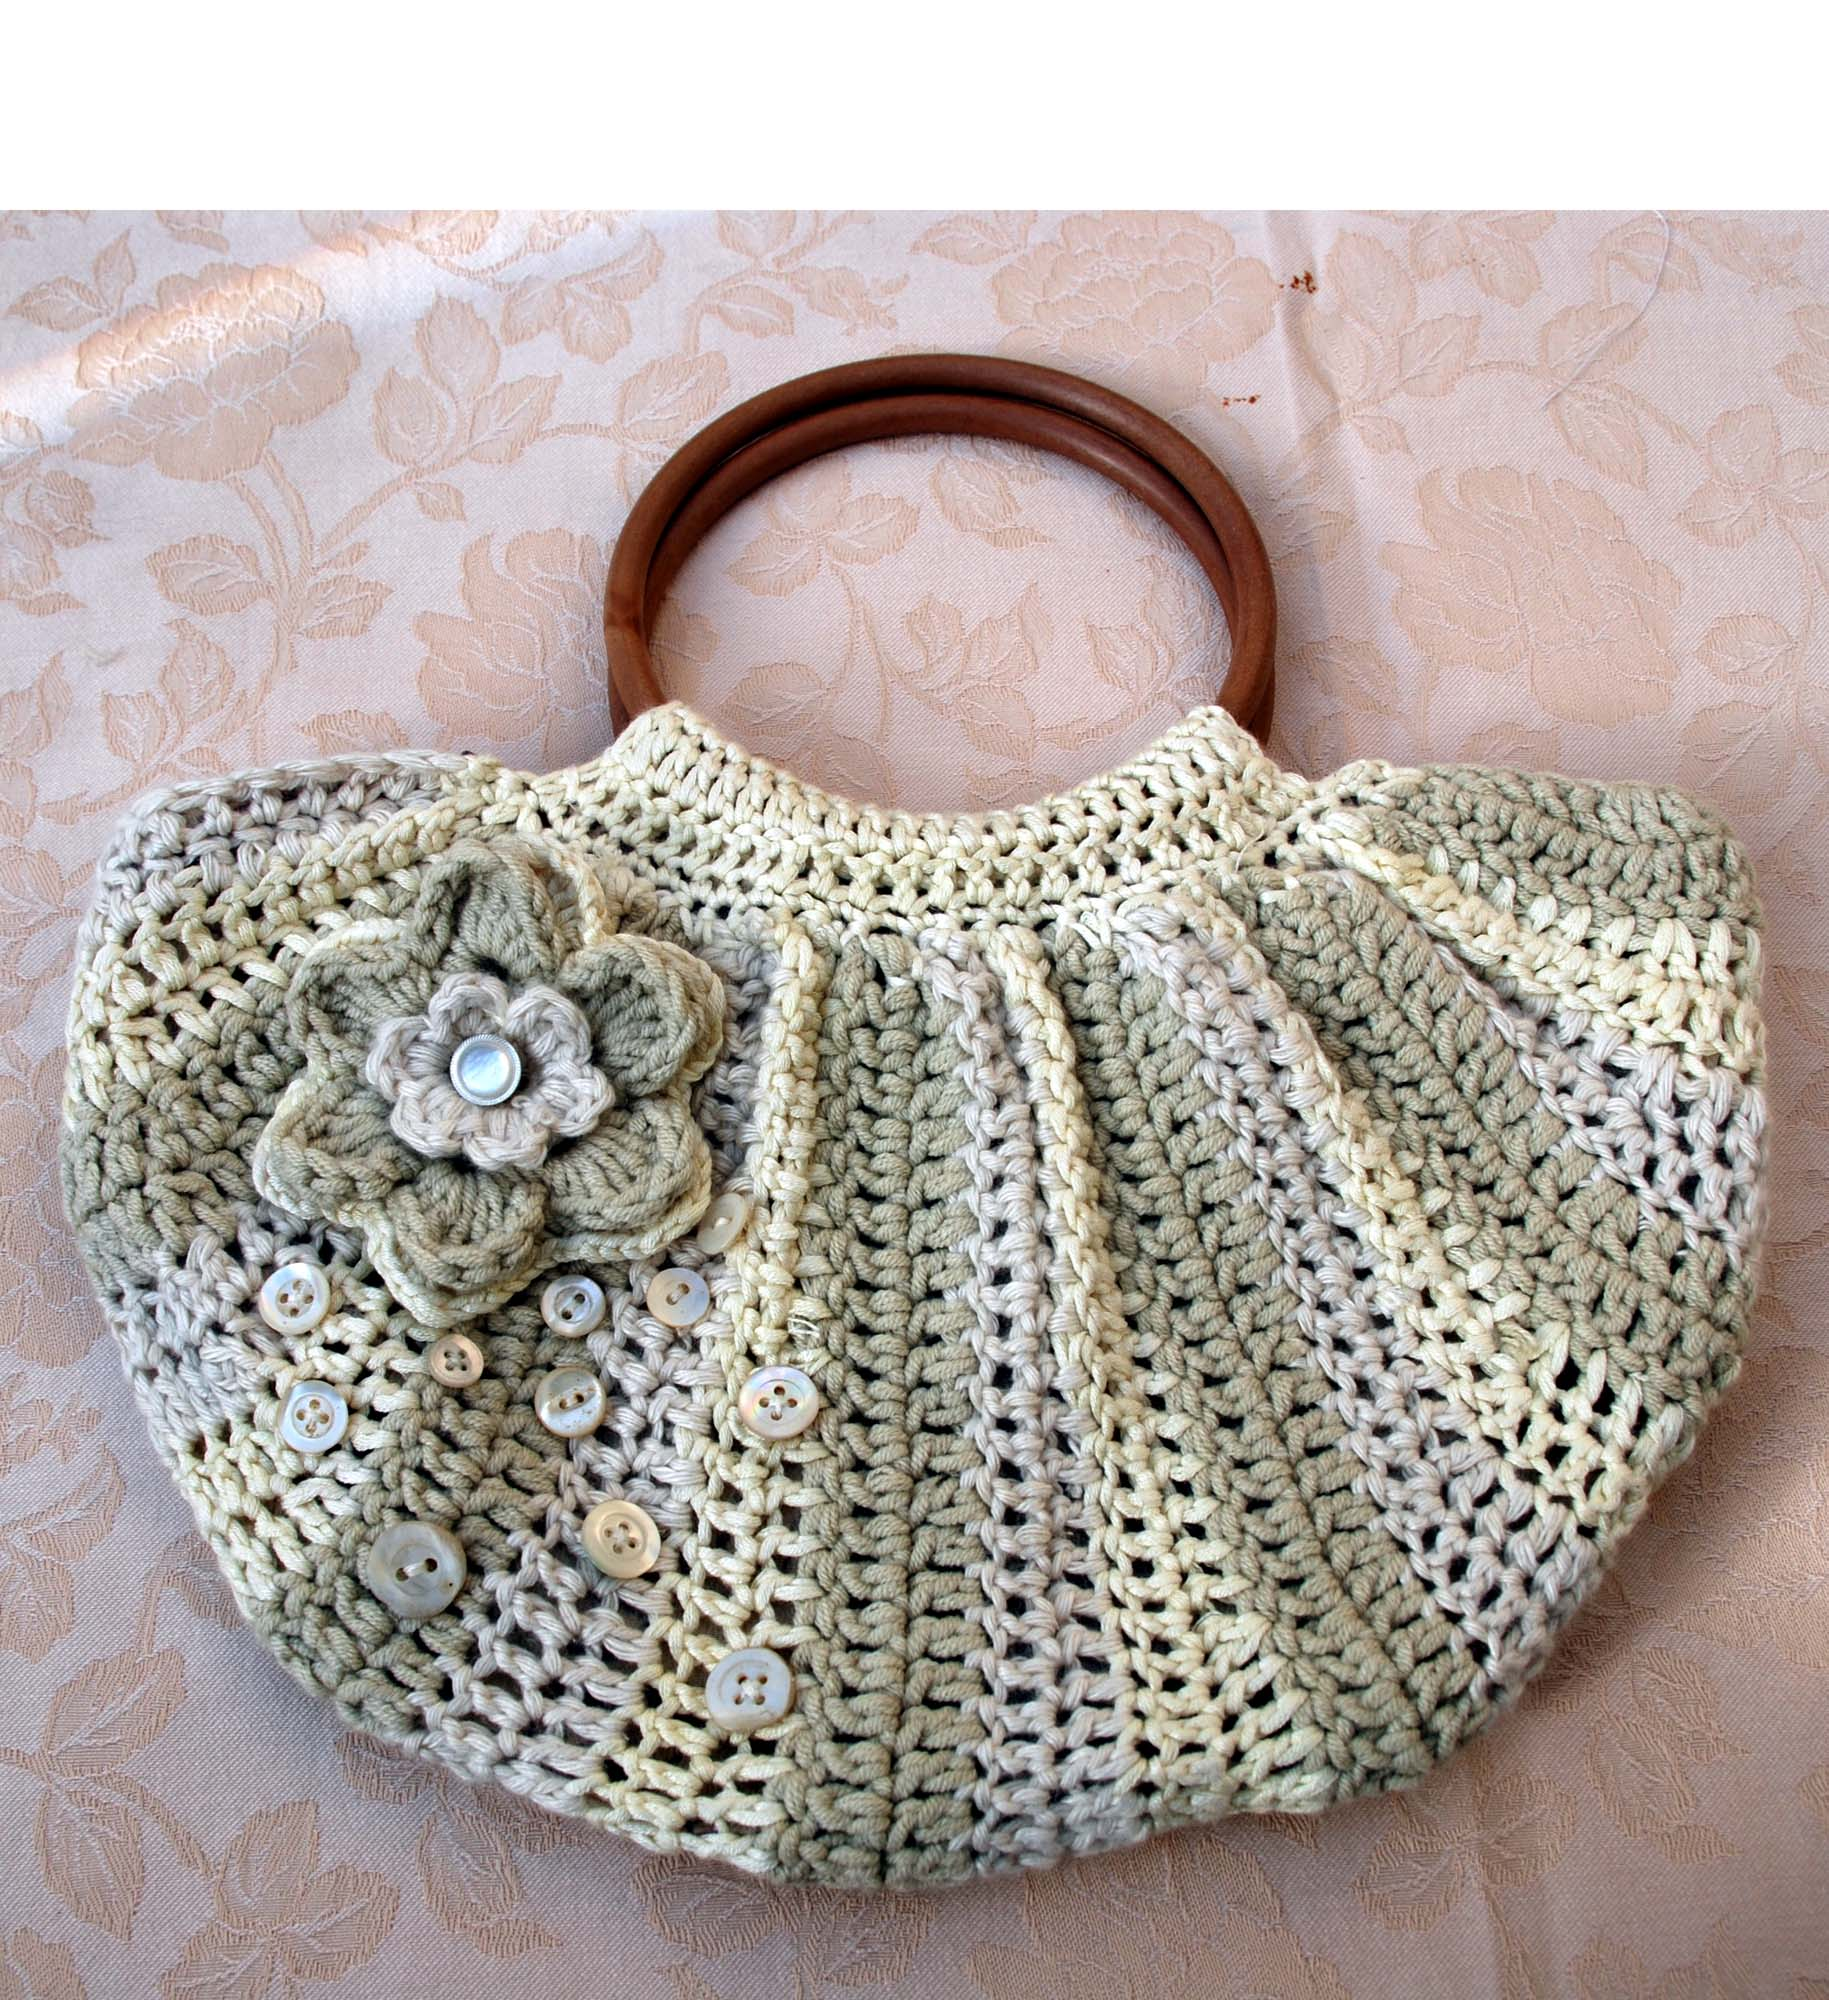 Crochet Simple Bag : Pretty crochet bag with silk and pearl buttons